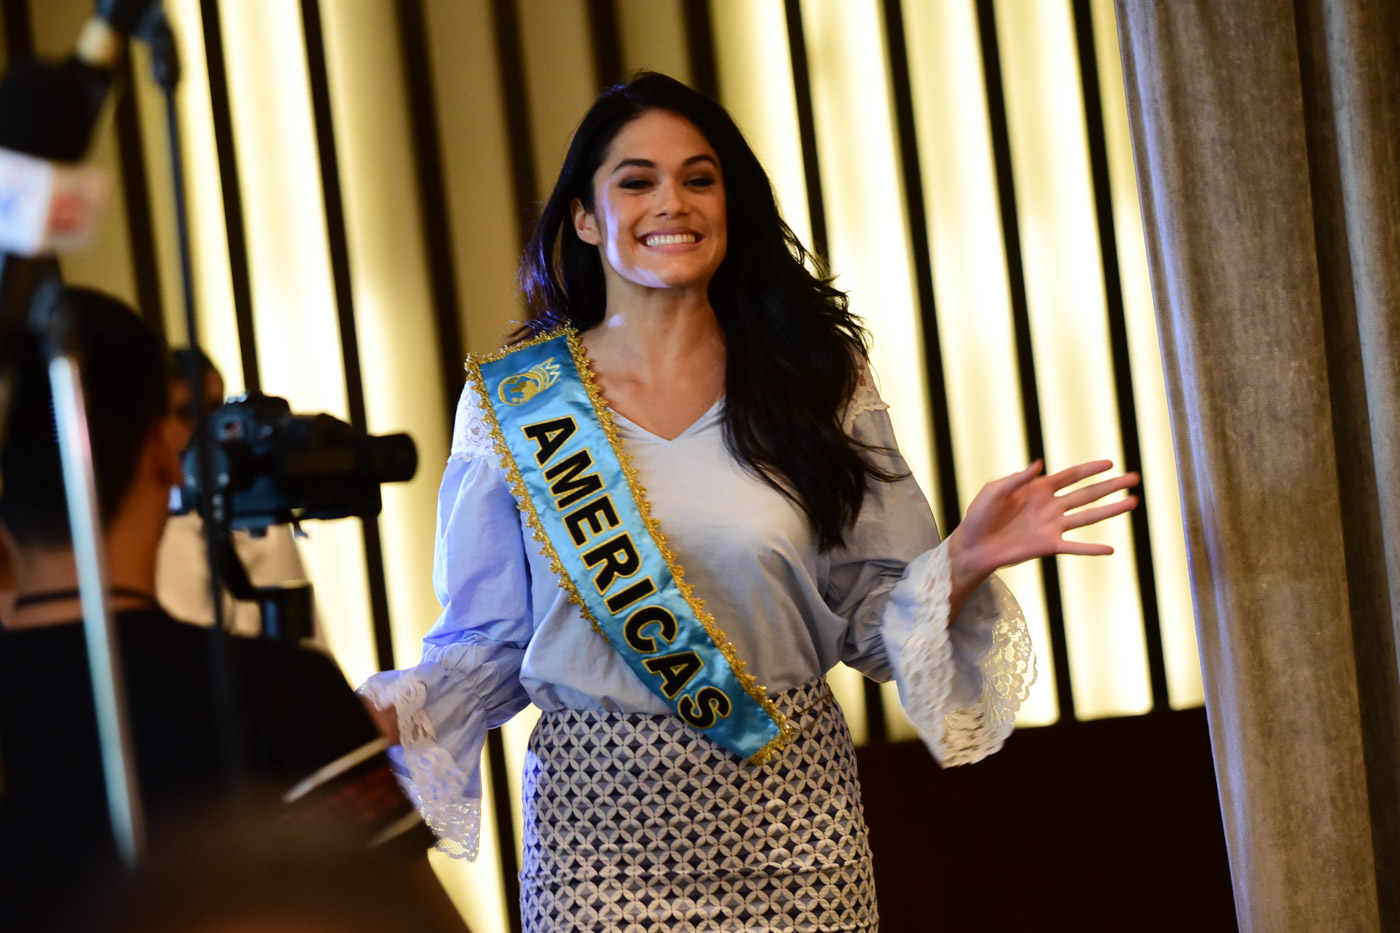 Audra entering the press conference of the Miss World Organization on September 1.